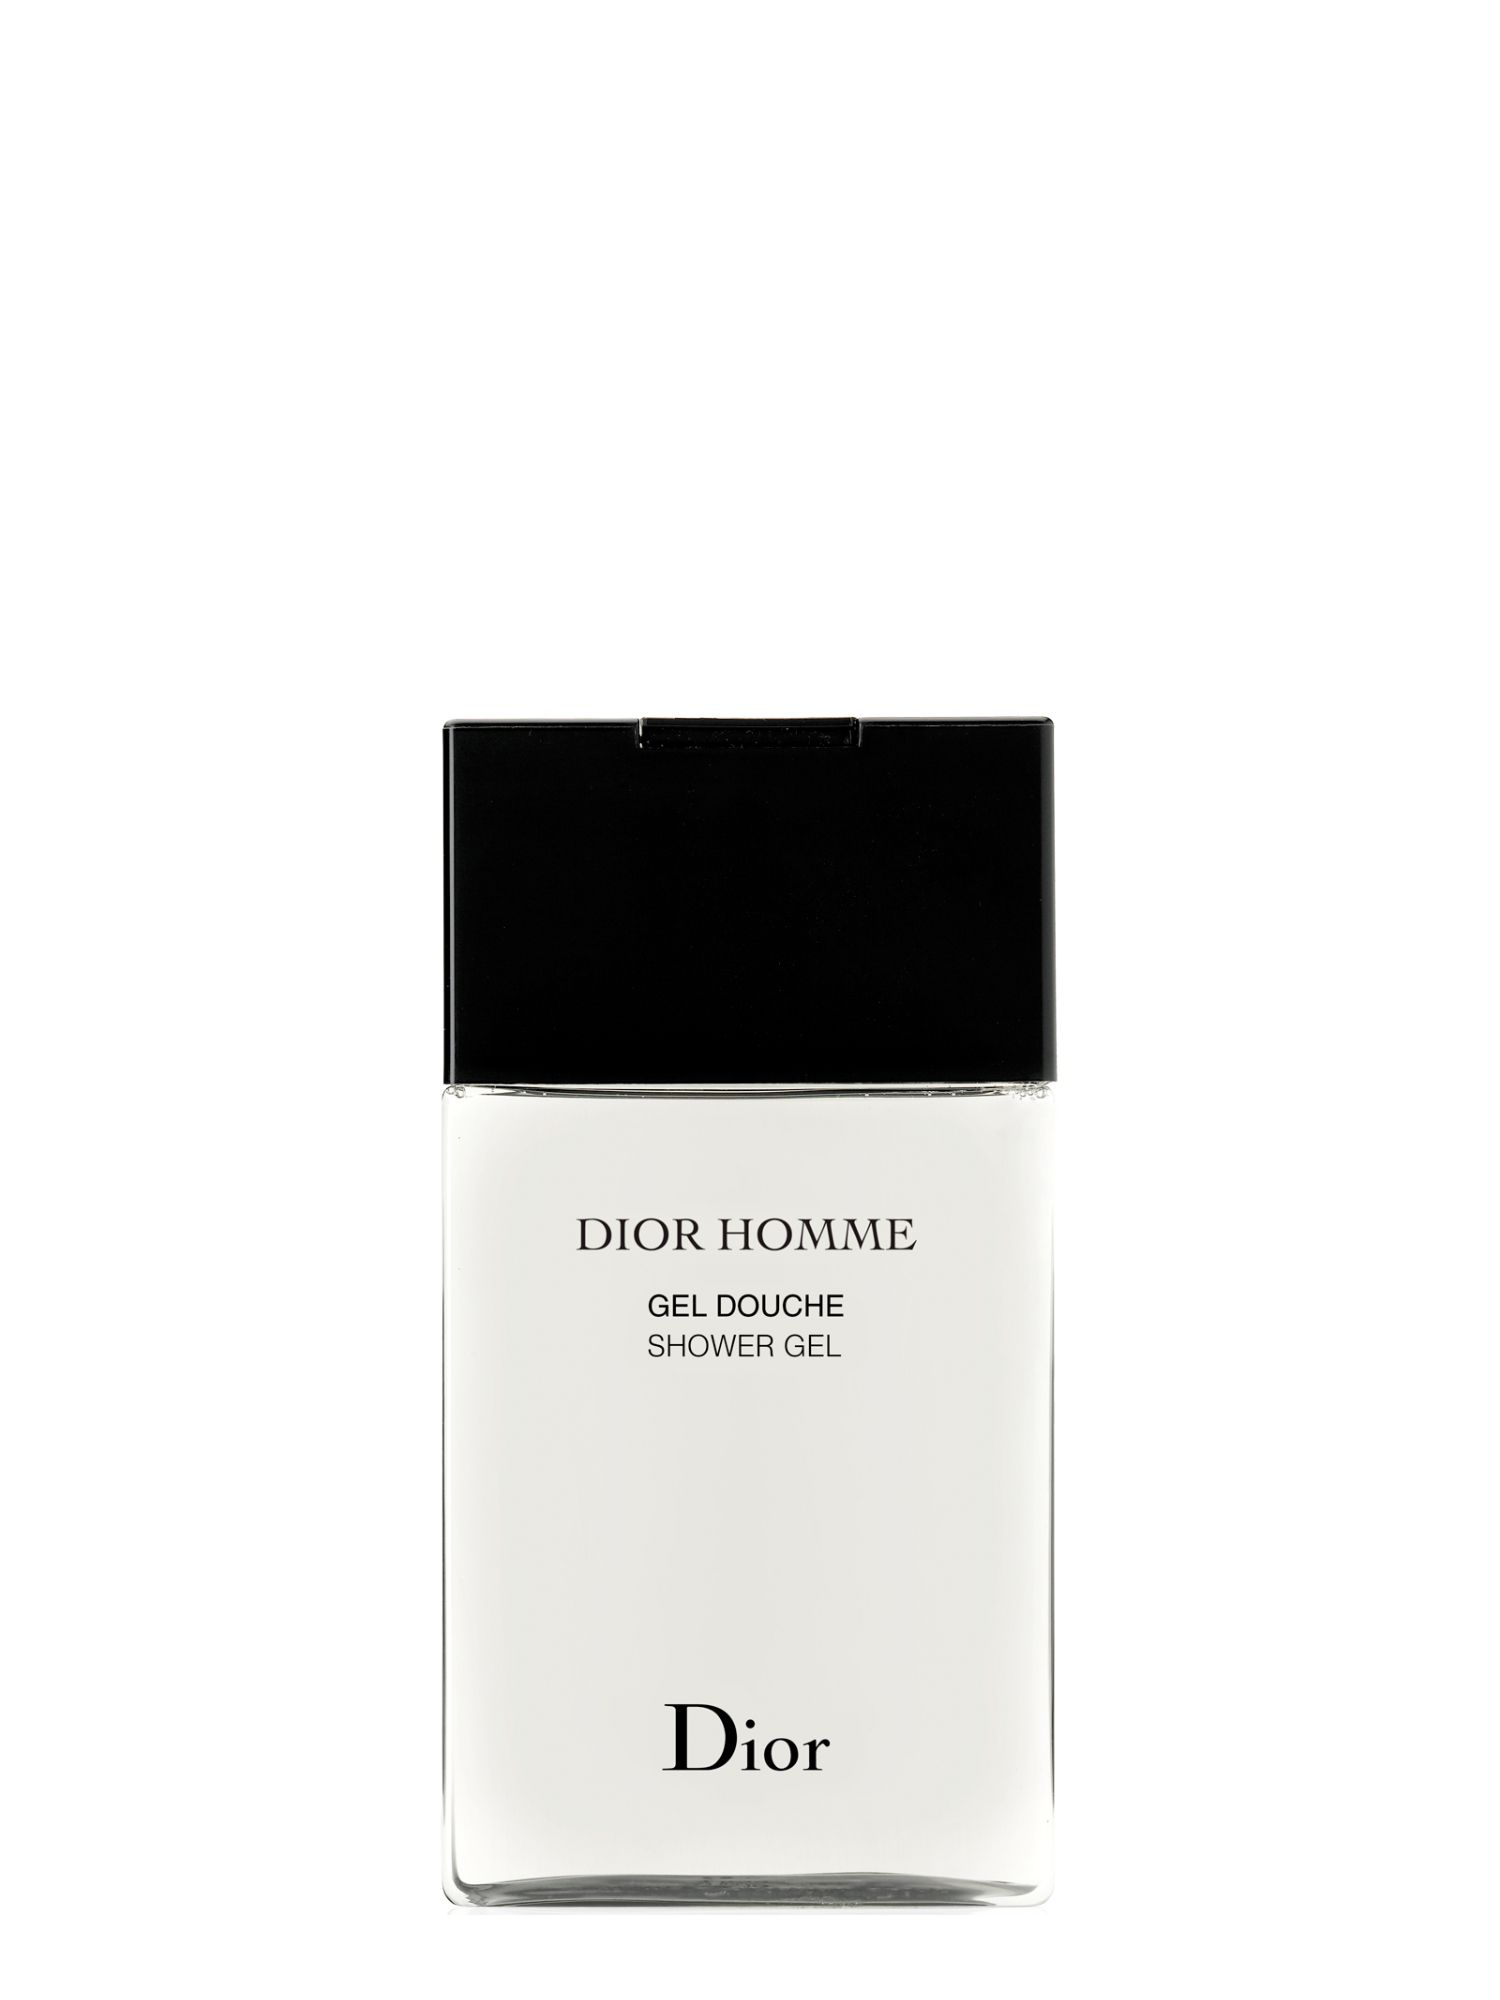 Dior Homme Shower Gel 150ml